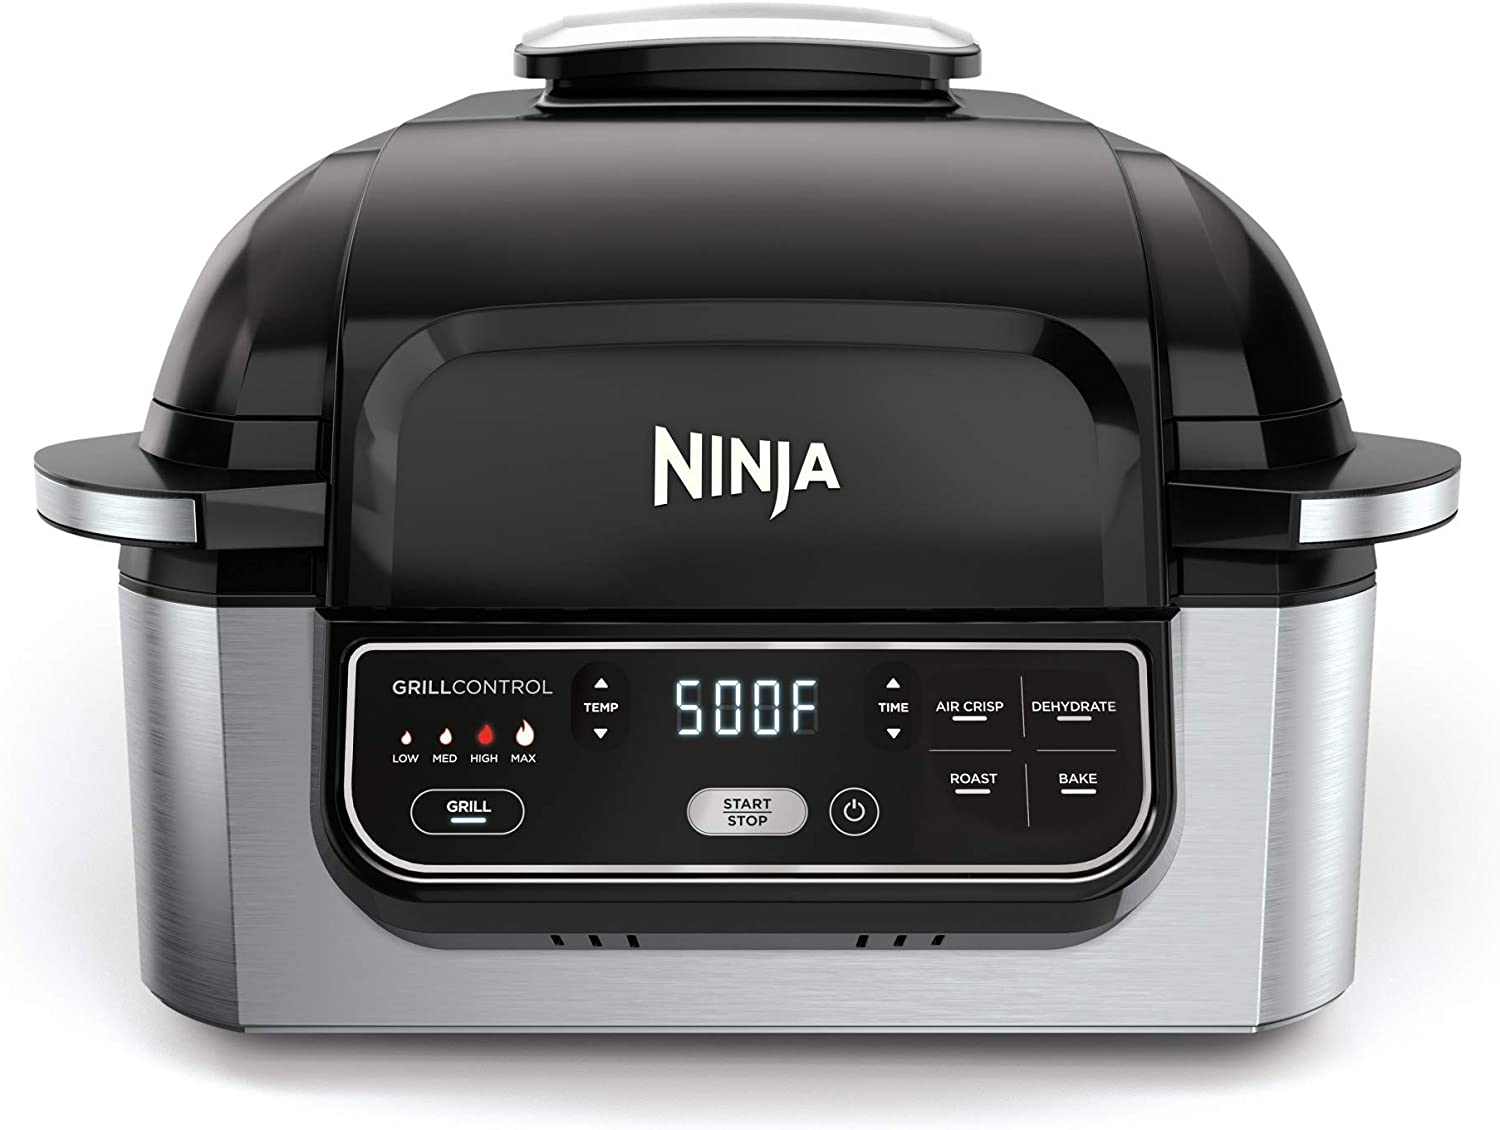 "Ninja Foodi 5-in-1 4-qt. Air Fryer, Roast, Bake, Dehydrate Indoor Electric Grill (AG301), 10"" x 10"", Black and Silver (Renewed)"